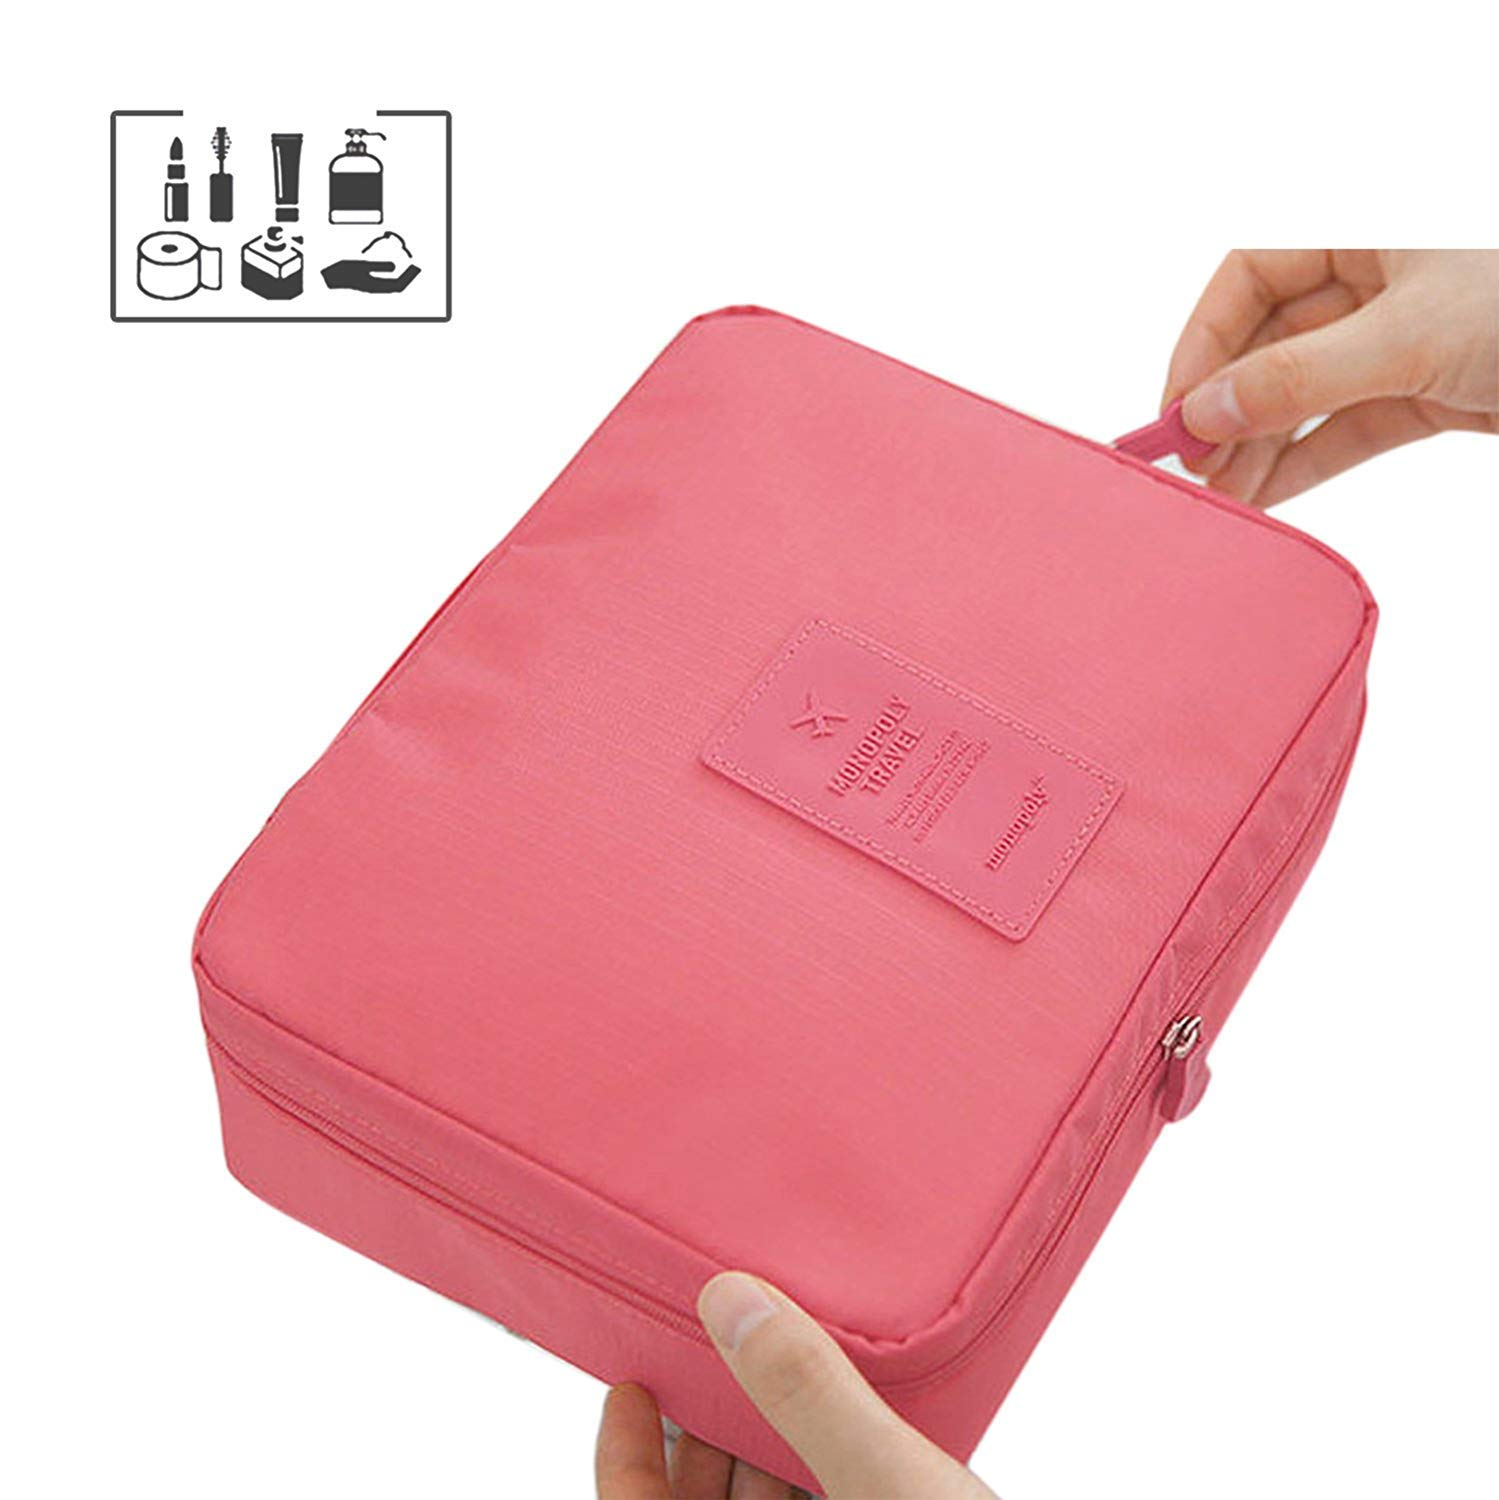 Multifunction Cosmetic Bag Portable Travel Makeup Bag Organizer makeup Storage Bag for Women Ladies Girl Yakuro